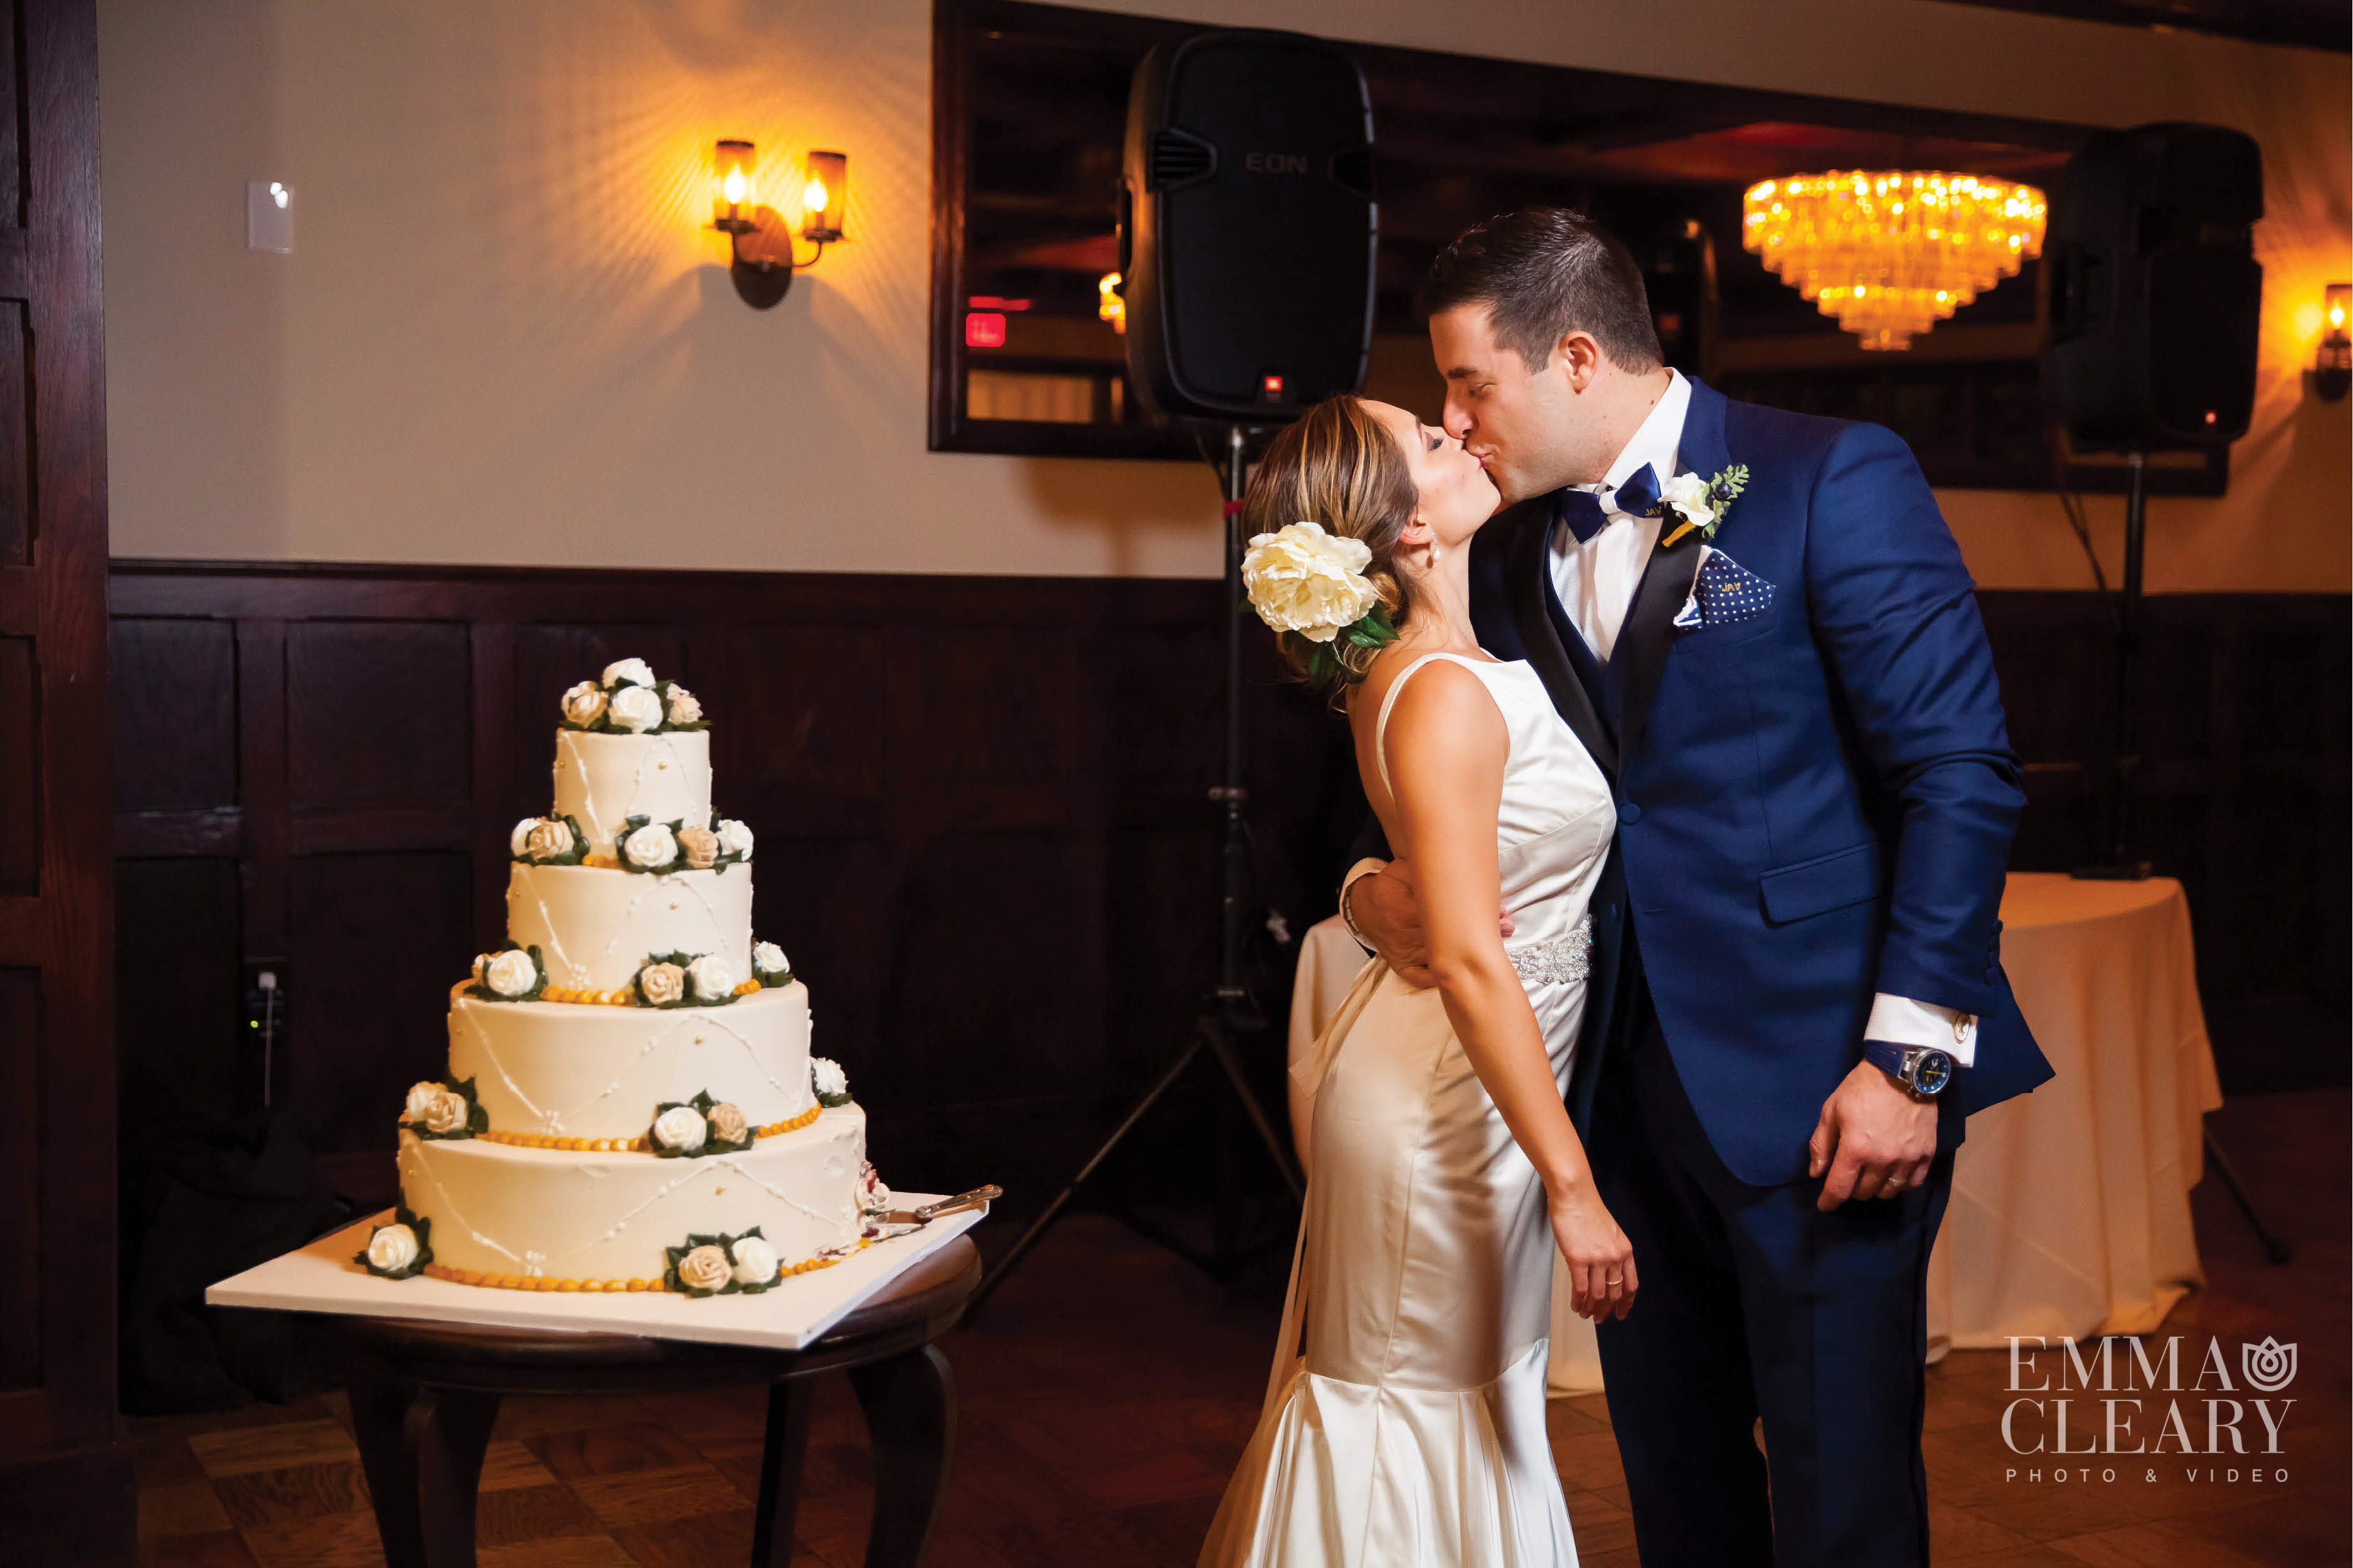 emma_cleary_photography-hotel-du-village-wedding27